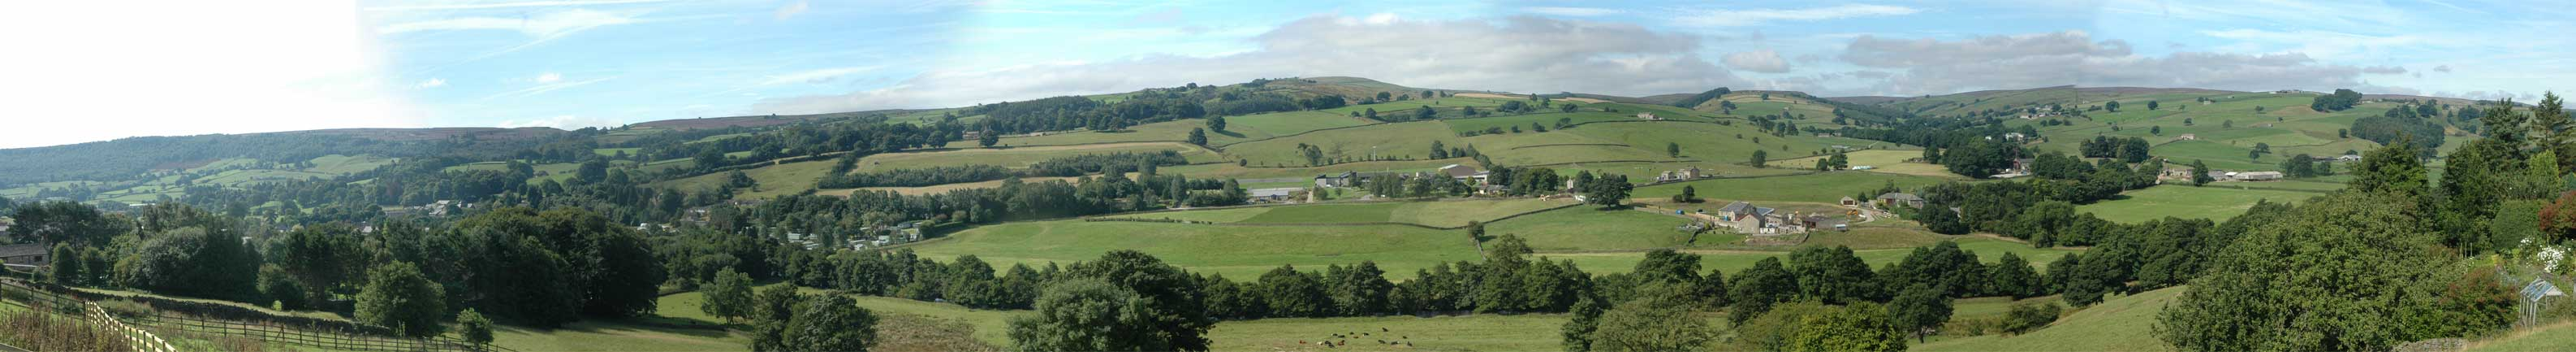 Bruce Cottage - panoramic view of Nidderdale